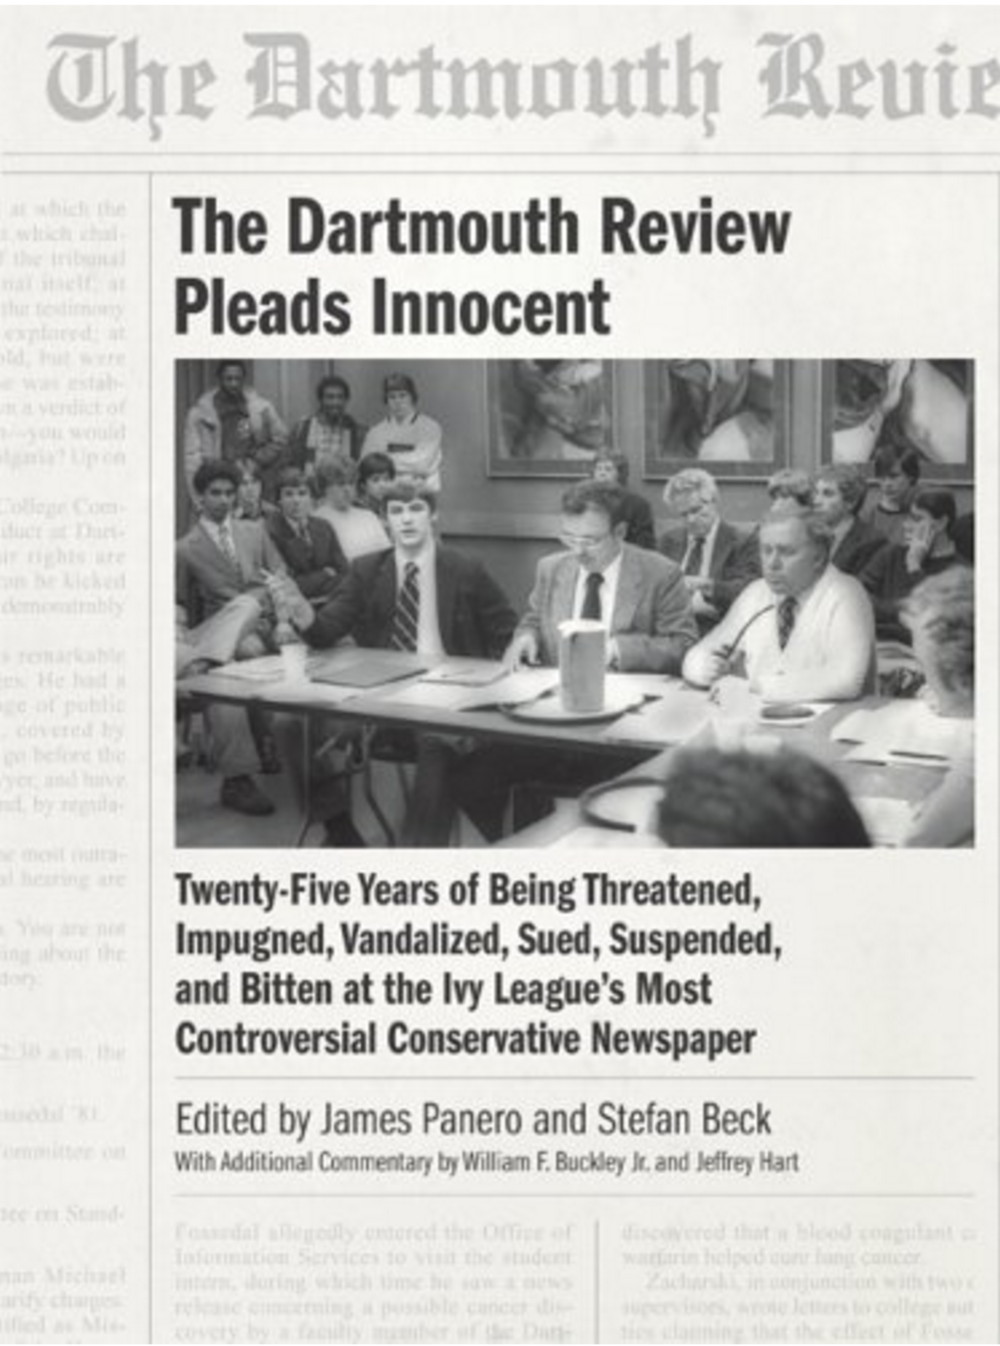 THE DARTMOUTH REVIEW PLEADS INNOCENT Edited by James Panero and Stefan Beck